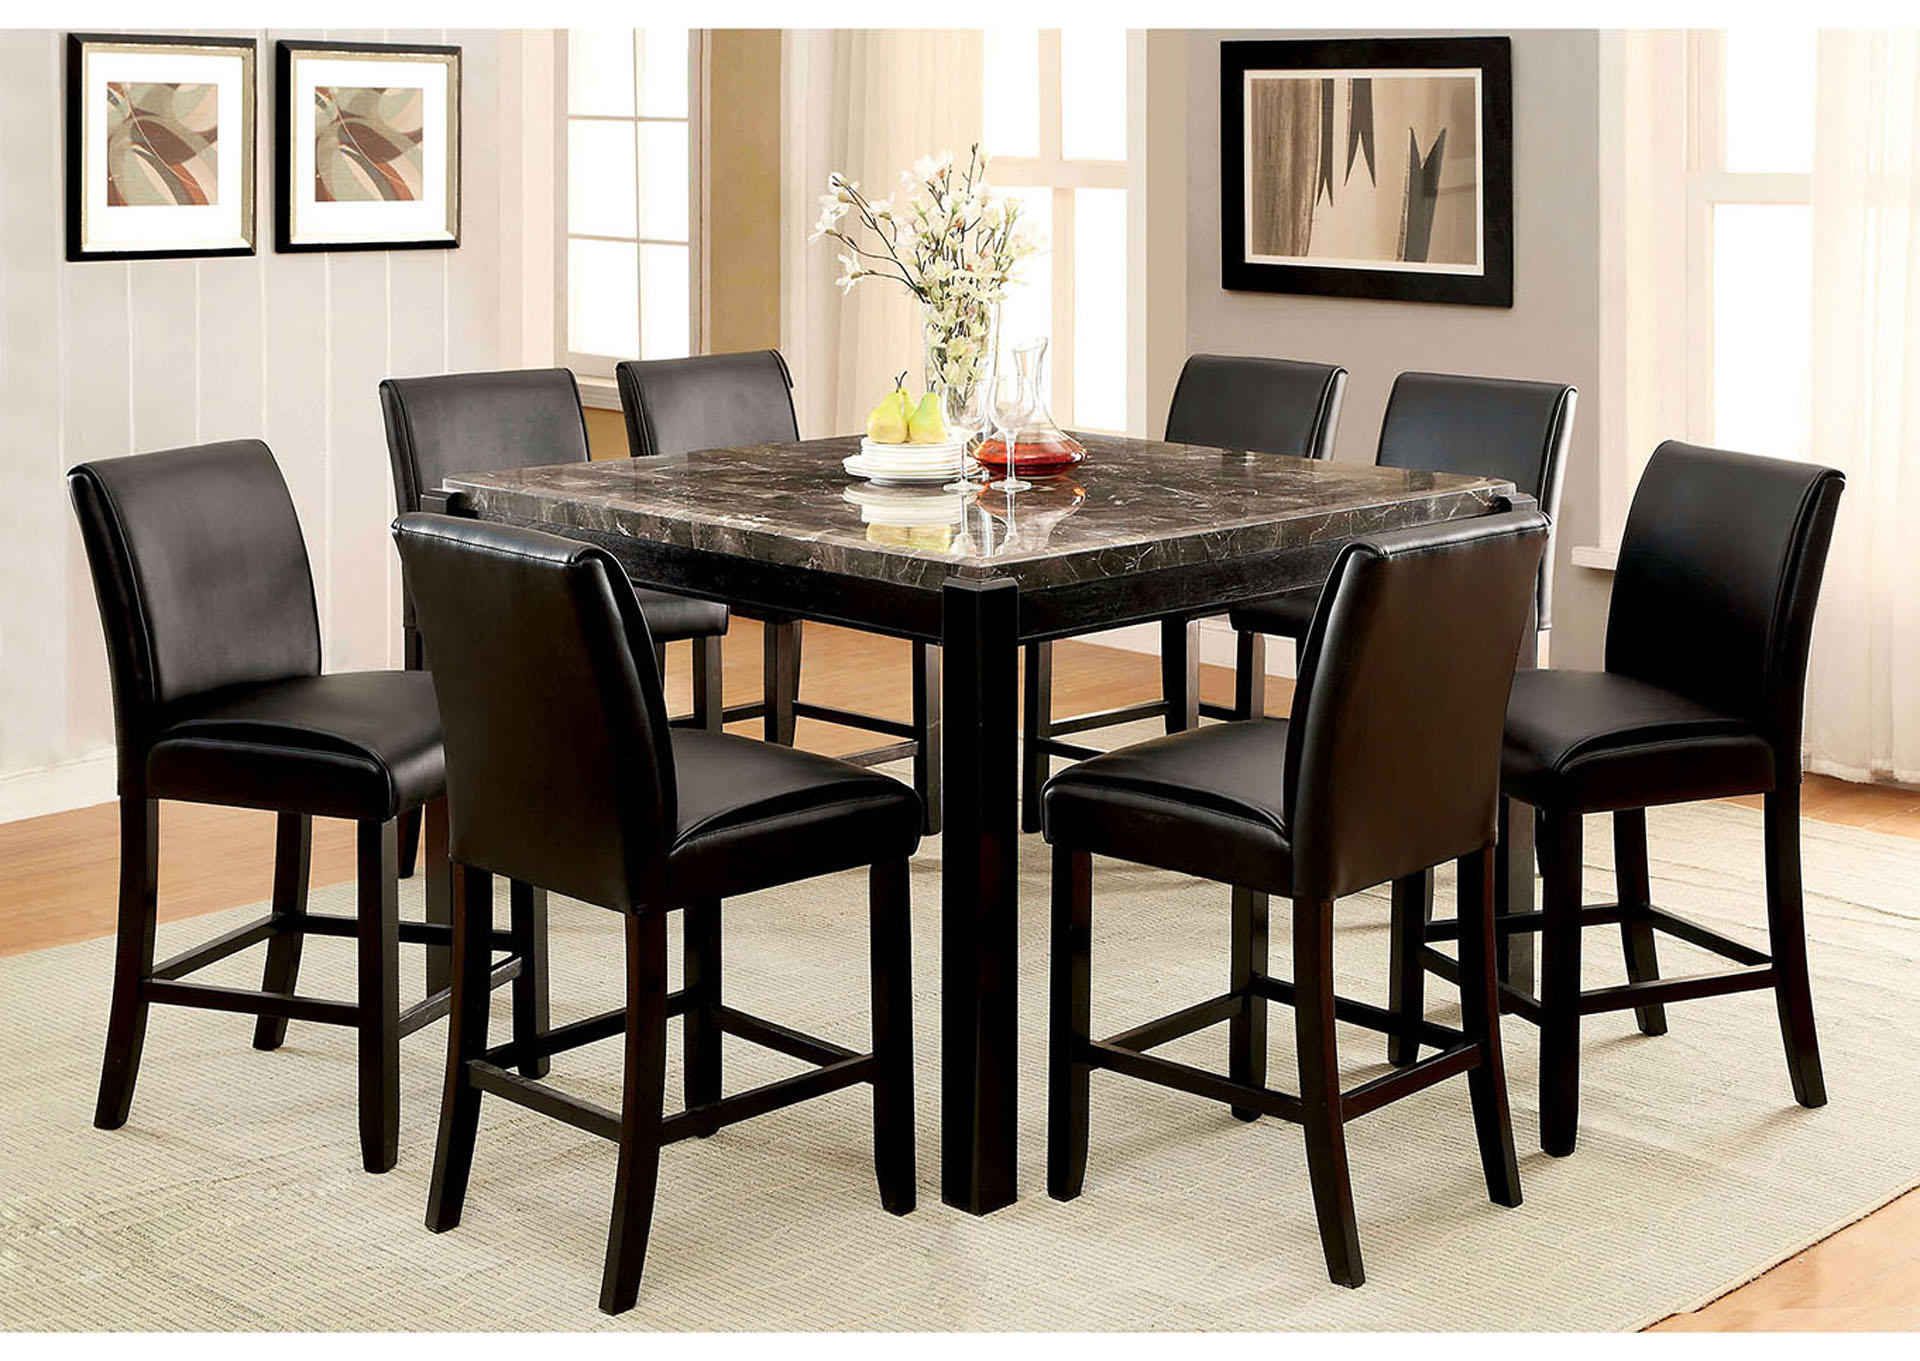 Gladstone ll Black Marble Top Counter Height Table,Furniture of America